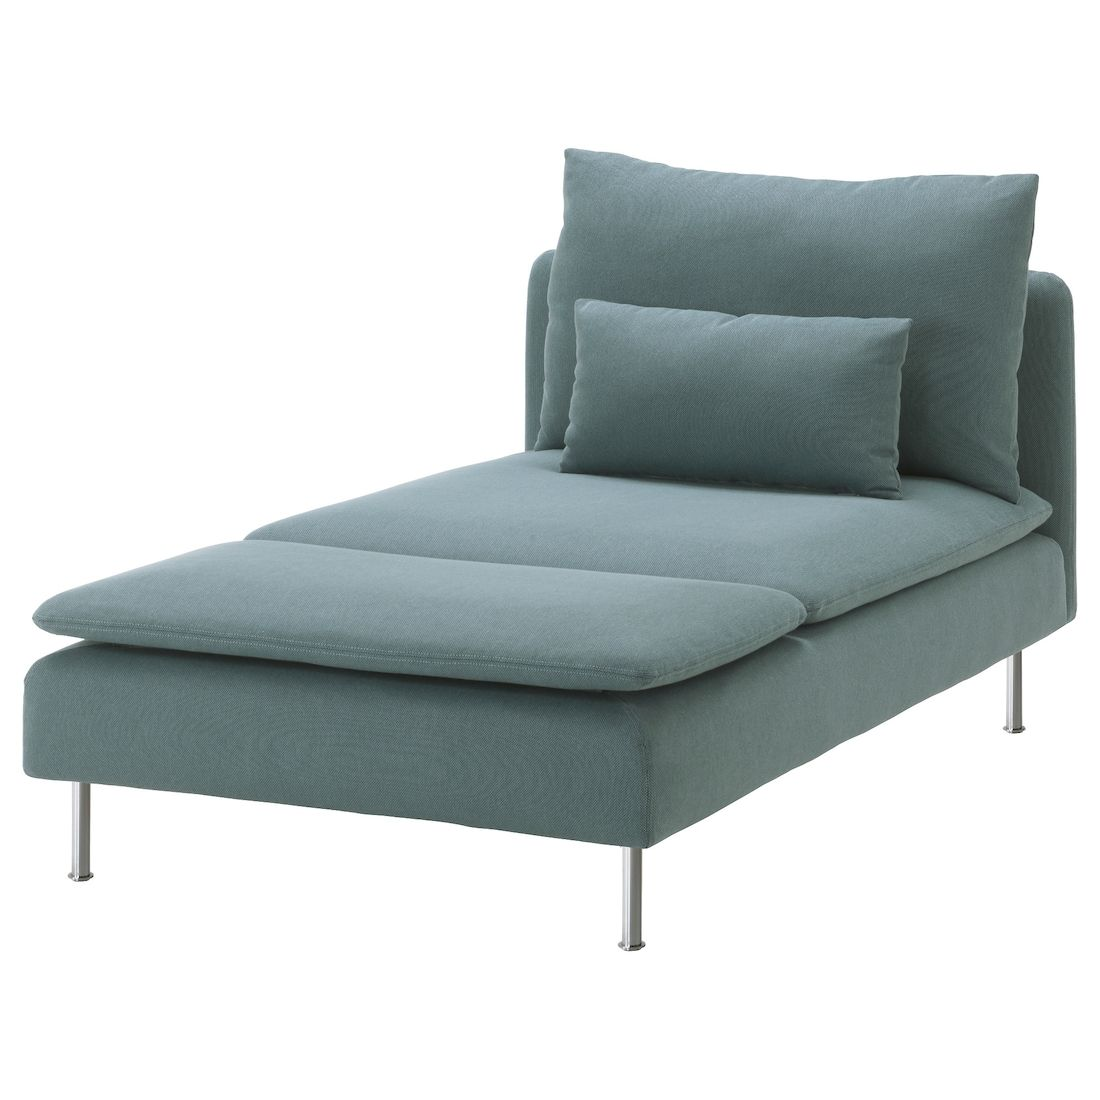 Photo of SÖDERHAMN Chaise, Finnsta turquoise – IKEA